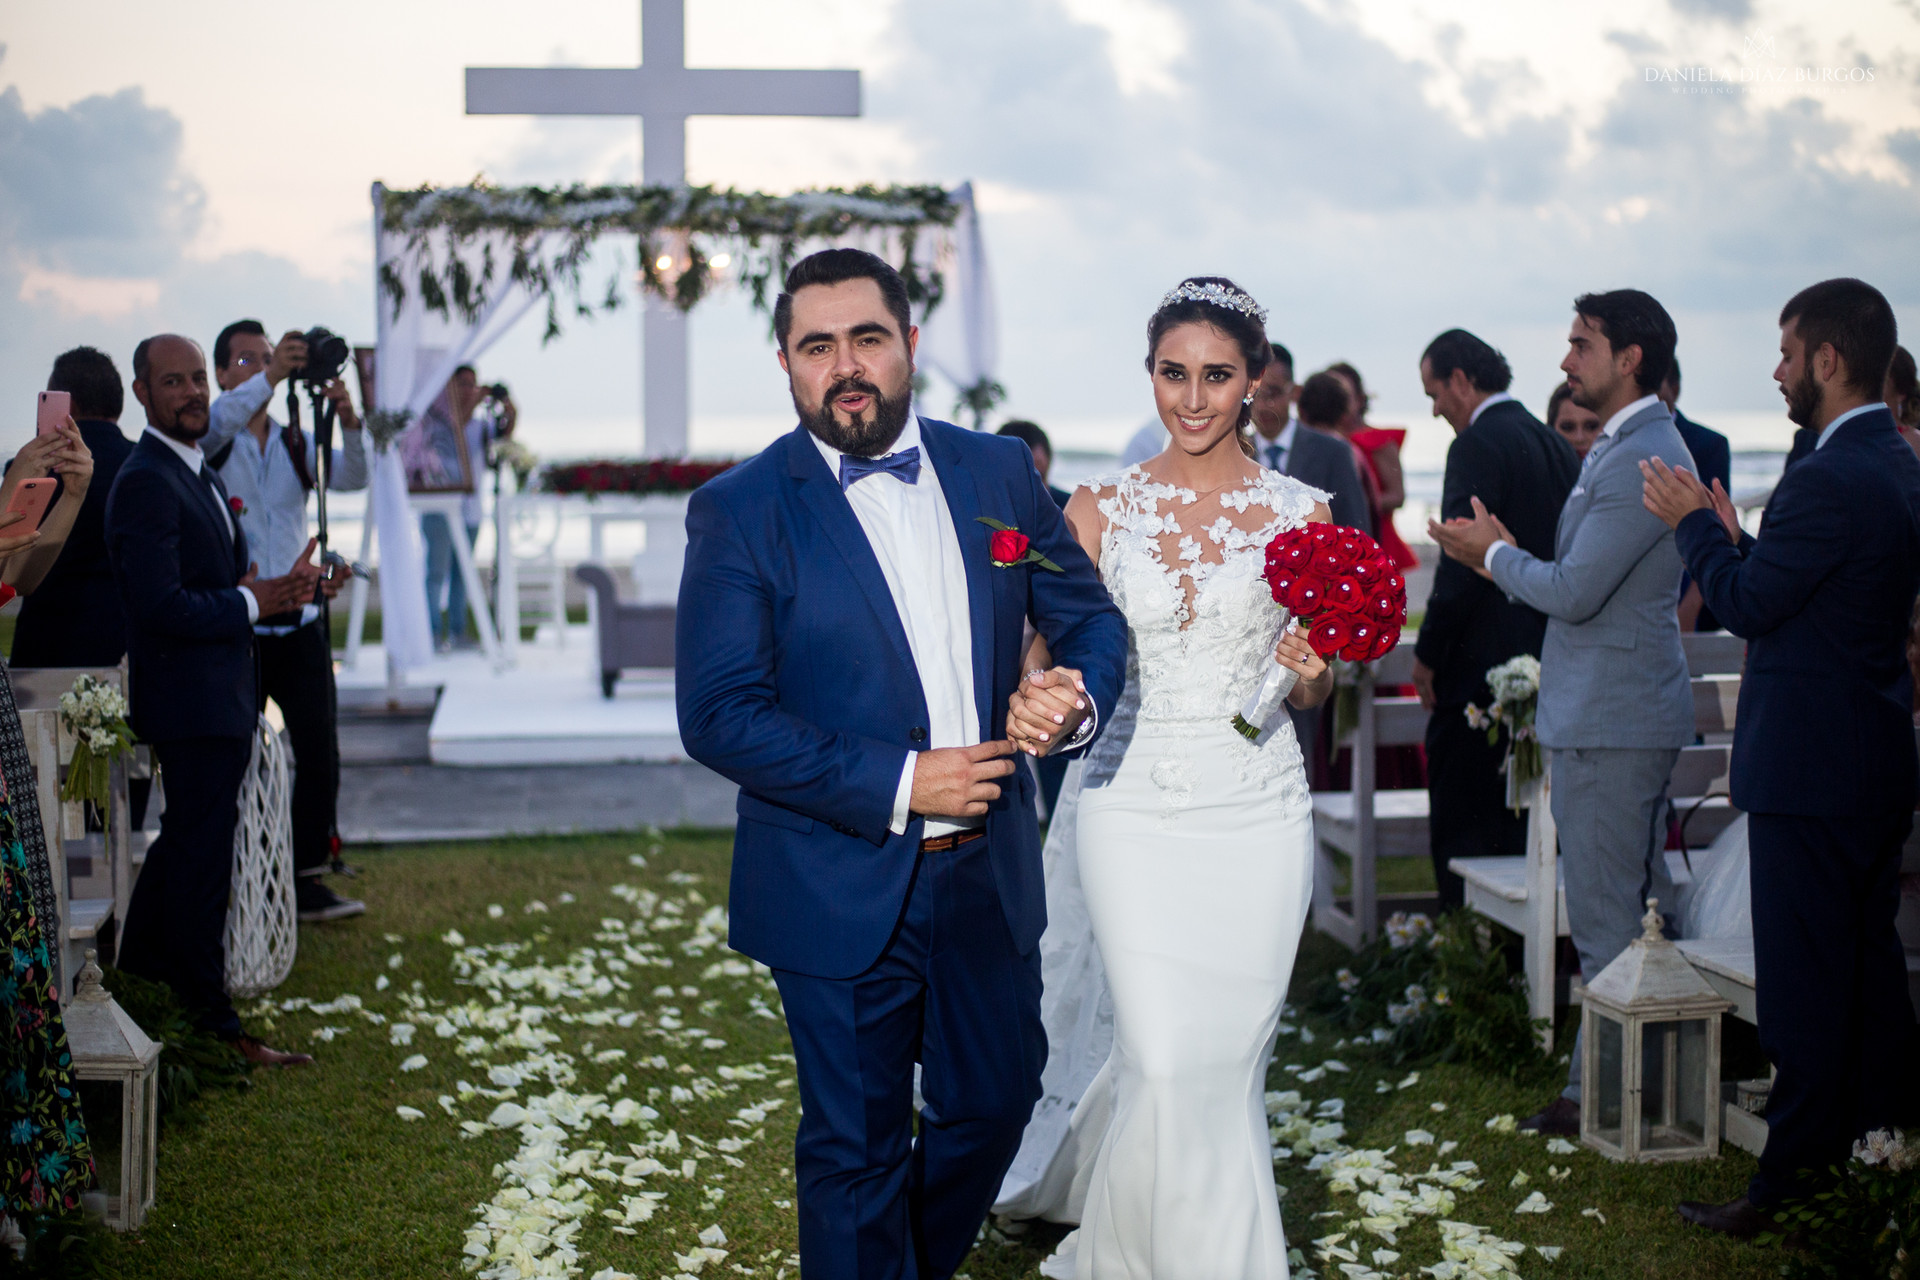 Zuza+Sergio-Wedding-LD-227.jpg